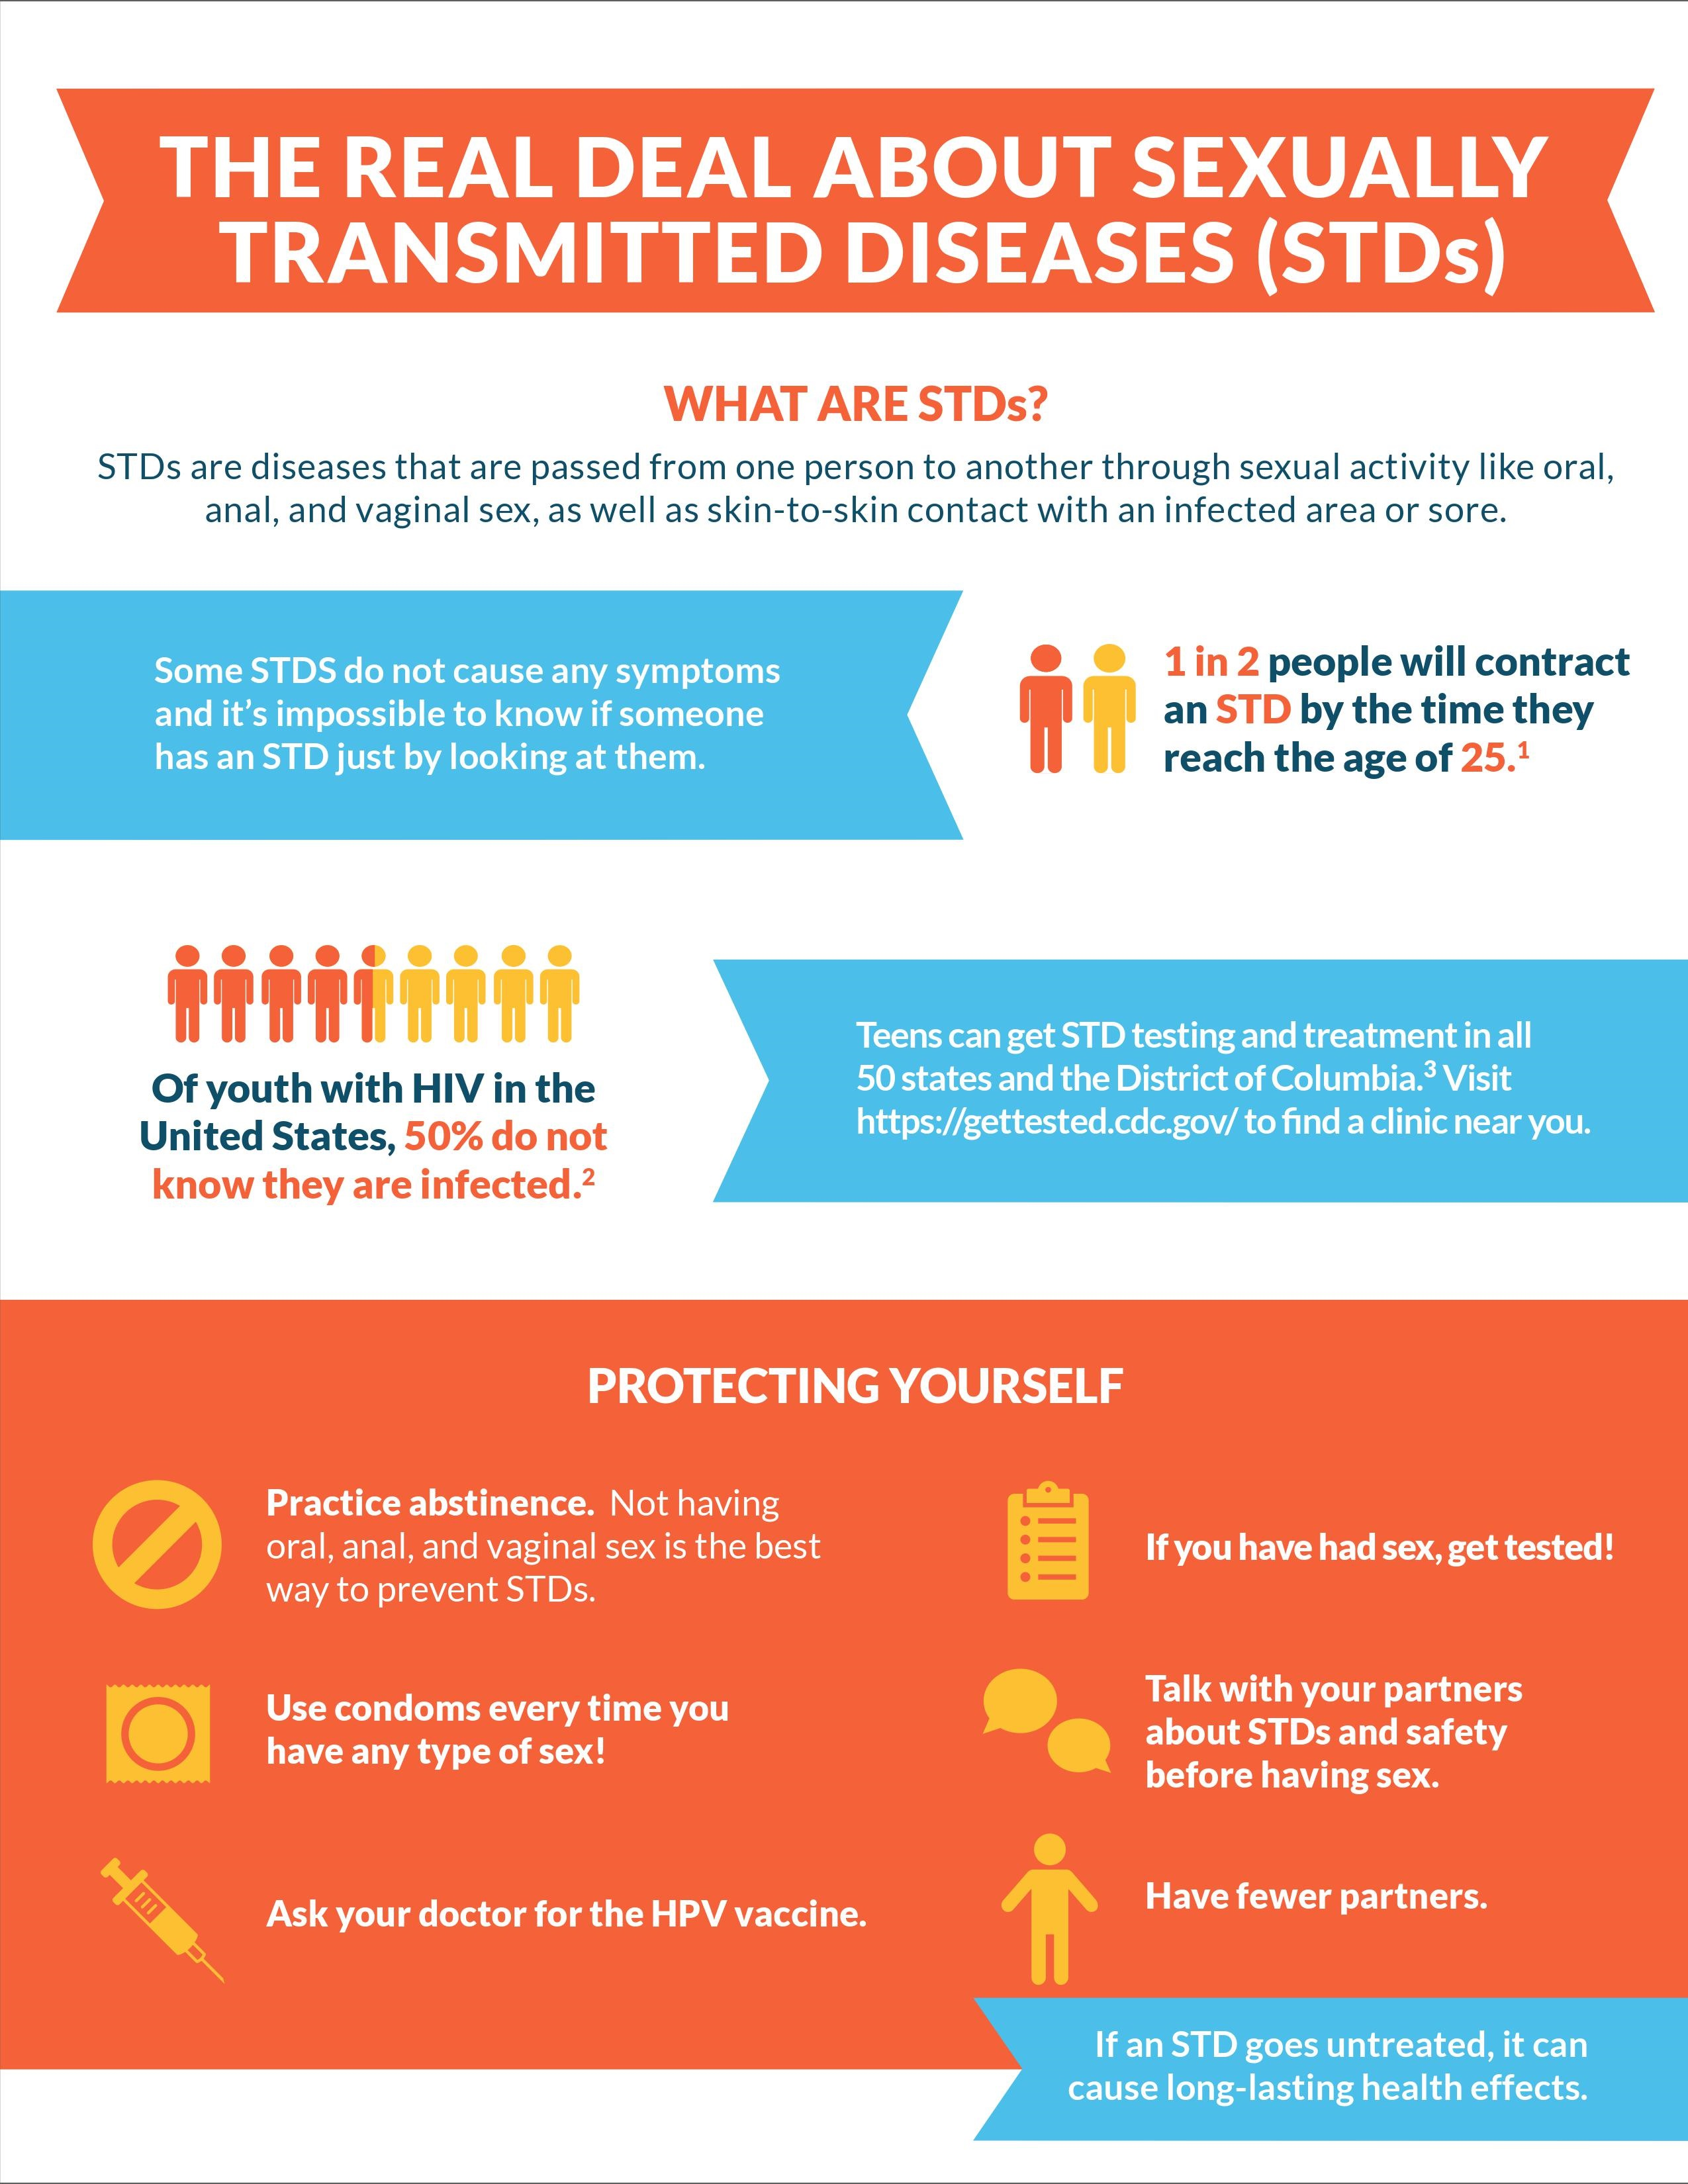 About Sexually Transmitted Diseases